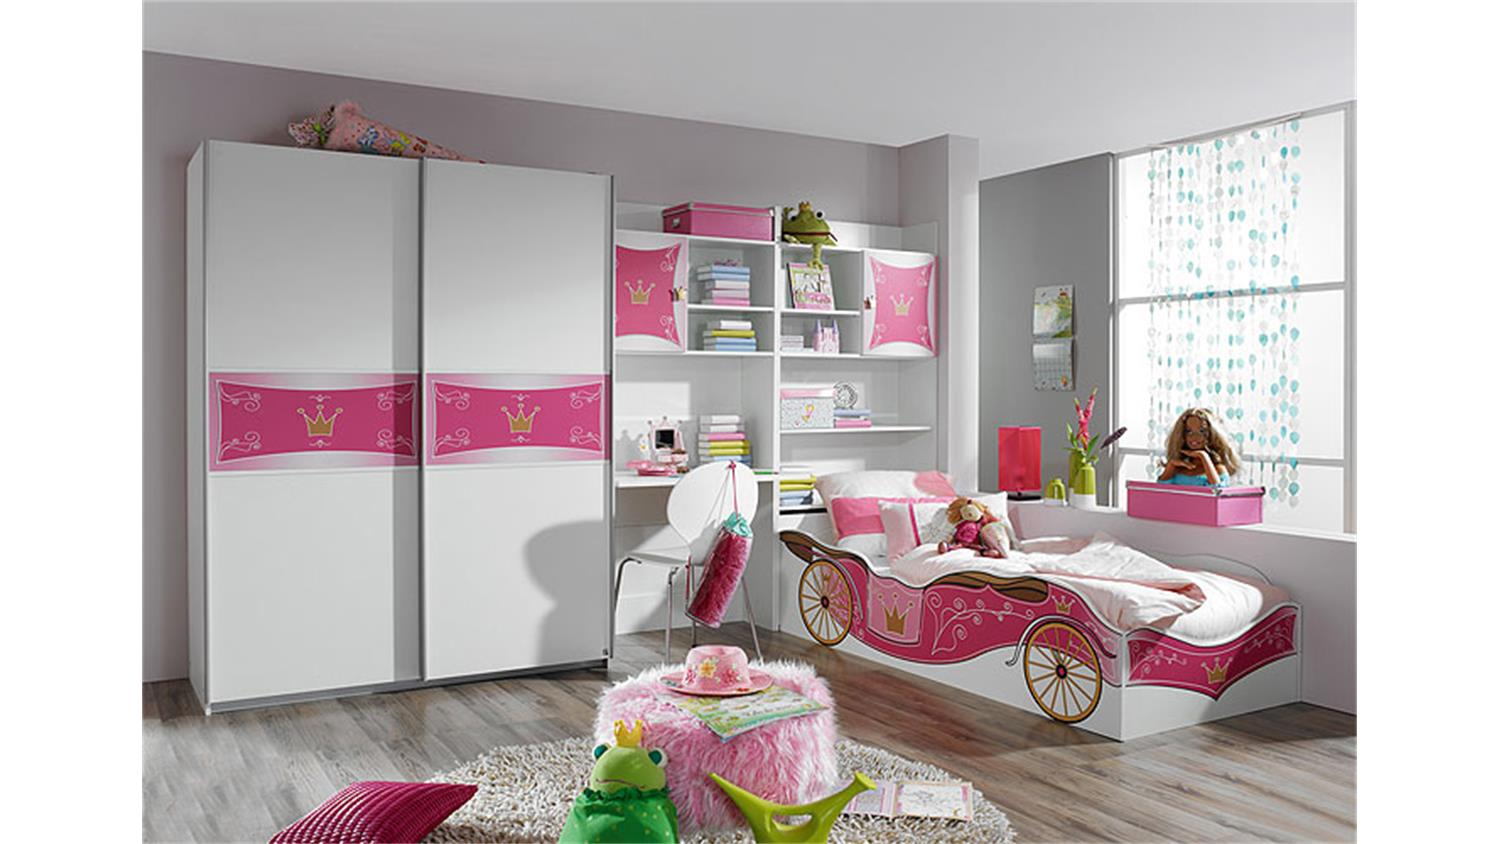 kinderbett kate autobett bett in wei und rosa dekor. Black Bedroom Furniture Sets. Home Design Ideas